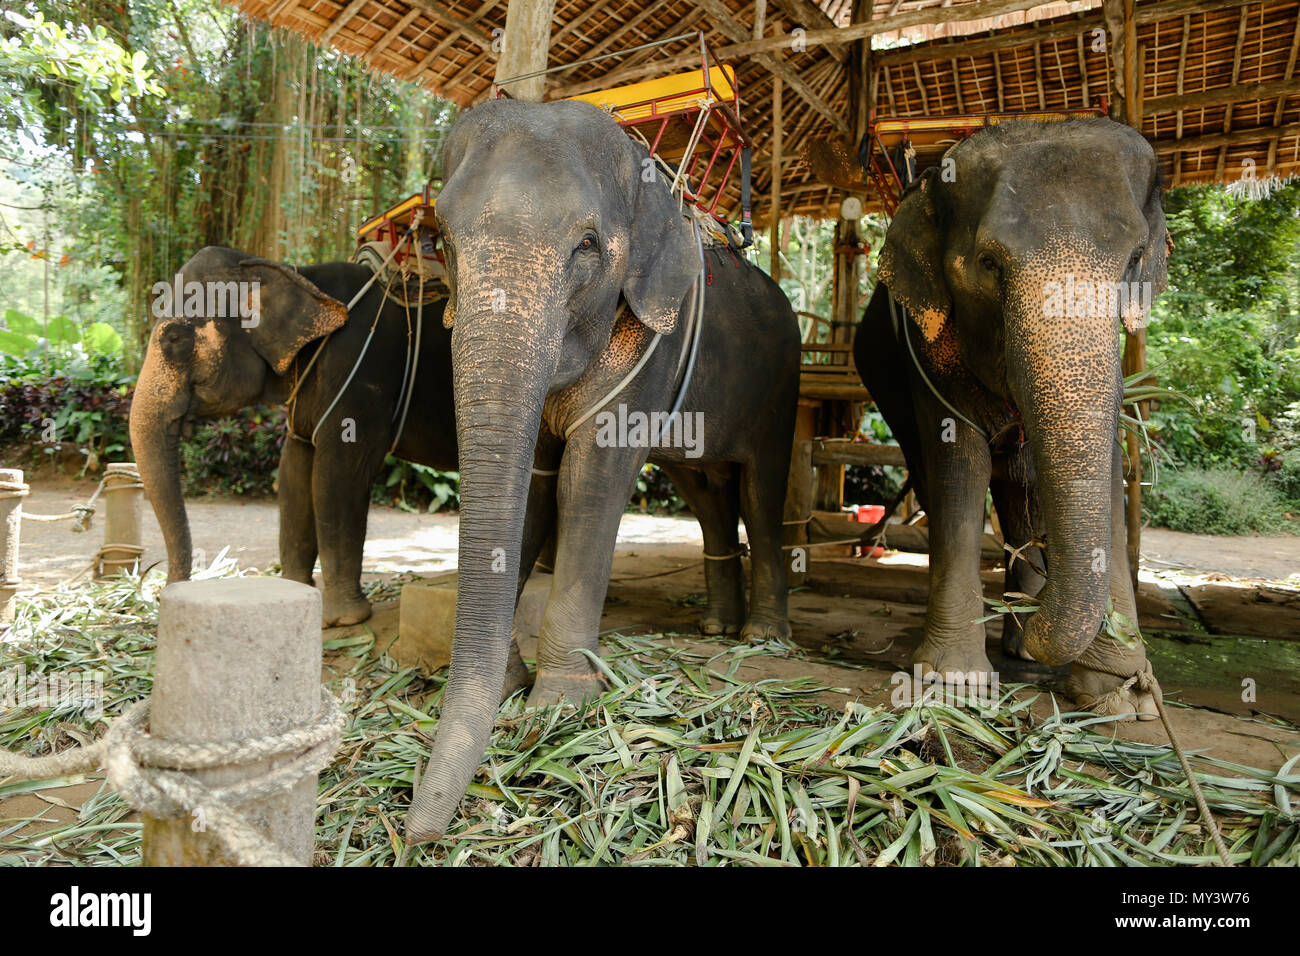 Tamed and tied elephants standing with saddle. - Stock Image